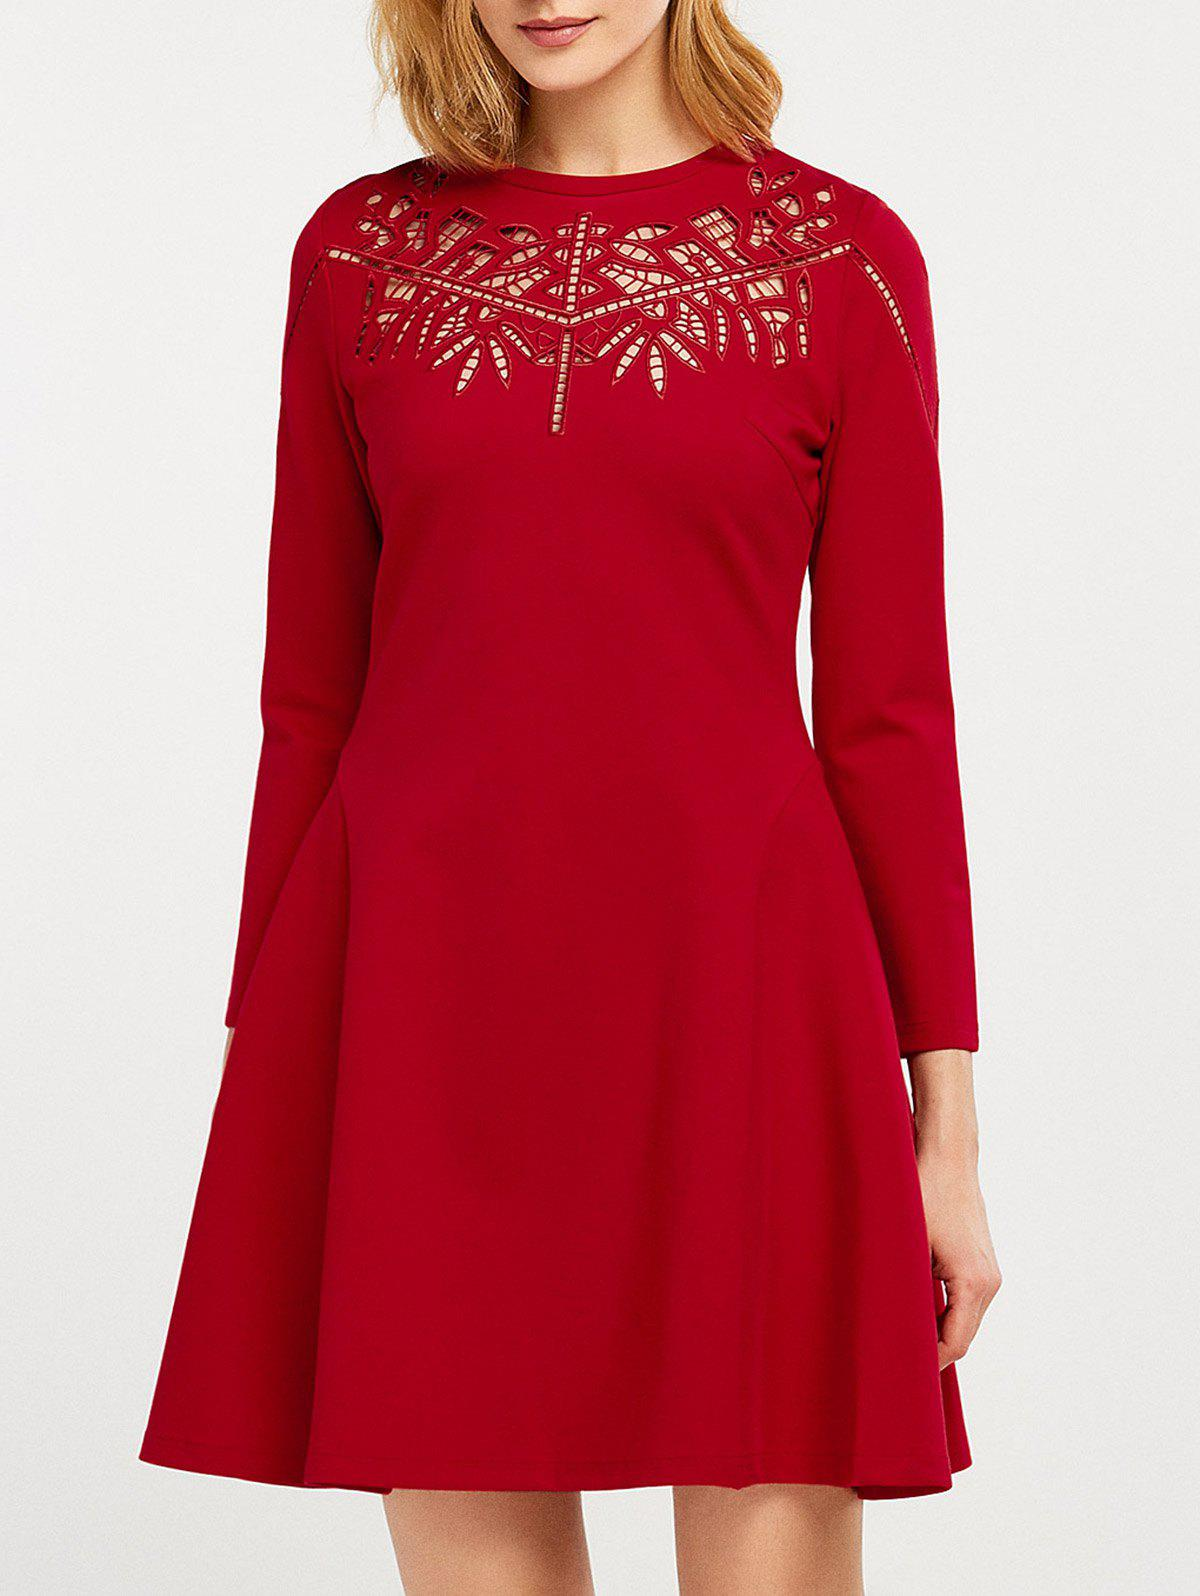 Fit and Flare Openwork Dress - RED XL